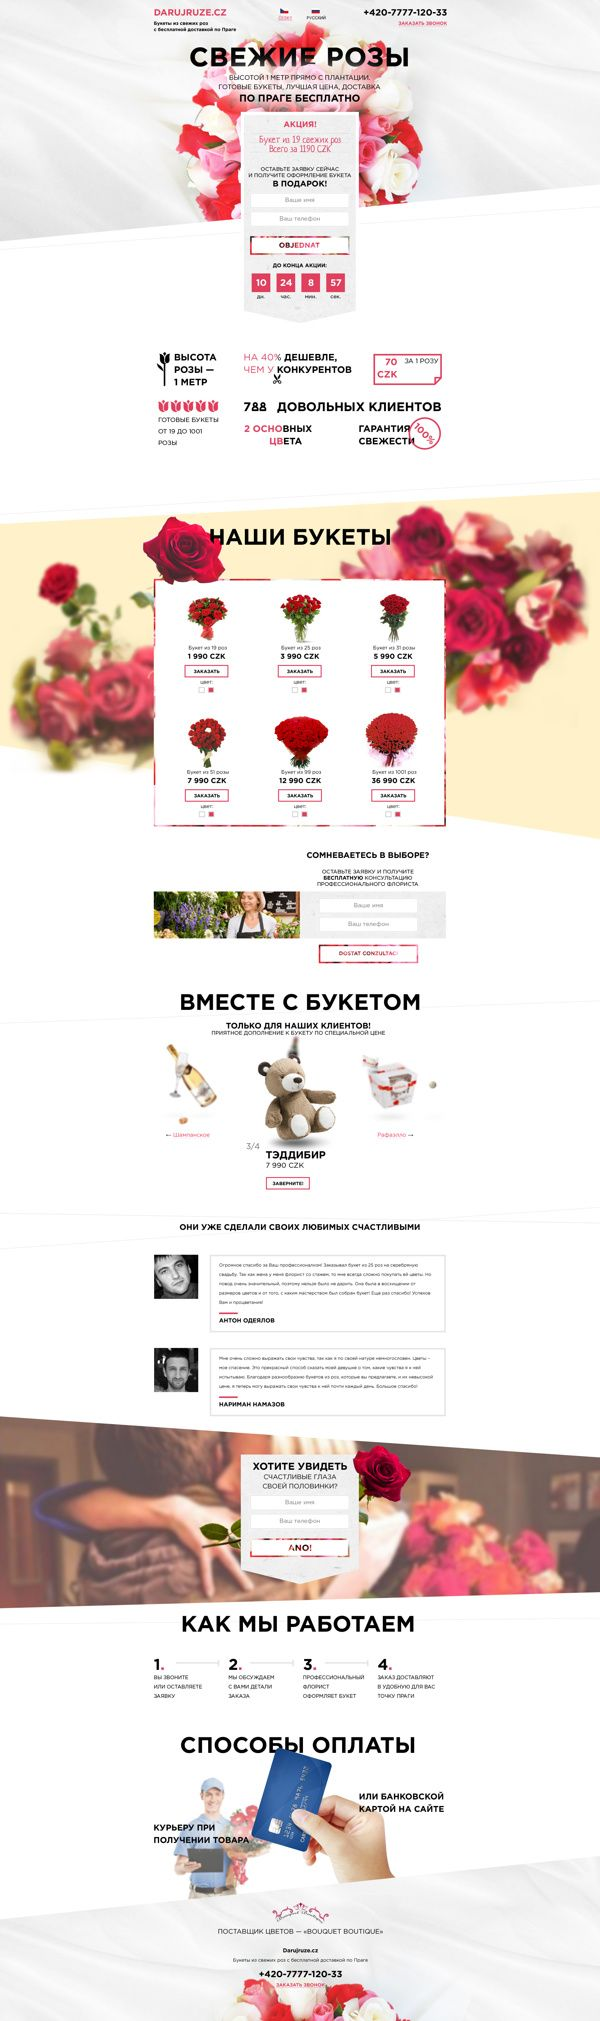 Roses by Ivan Erokhin, via Behance